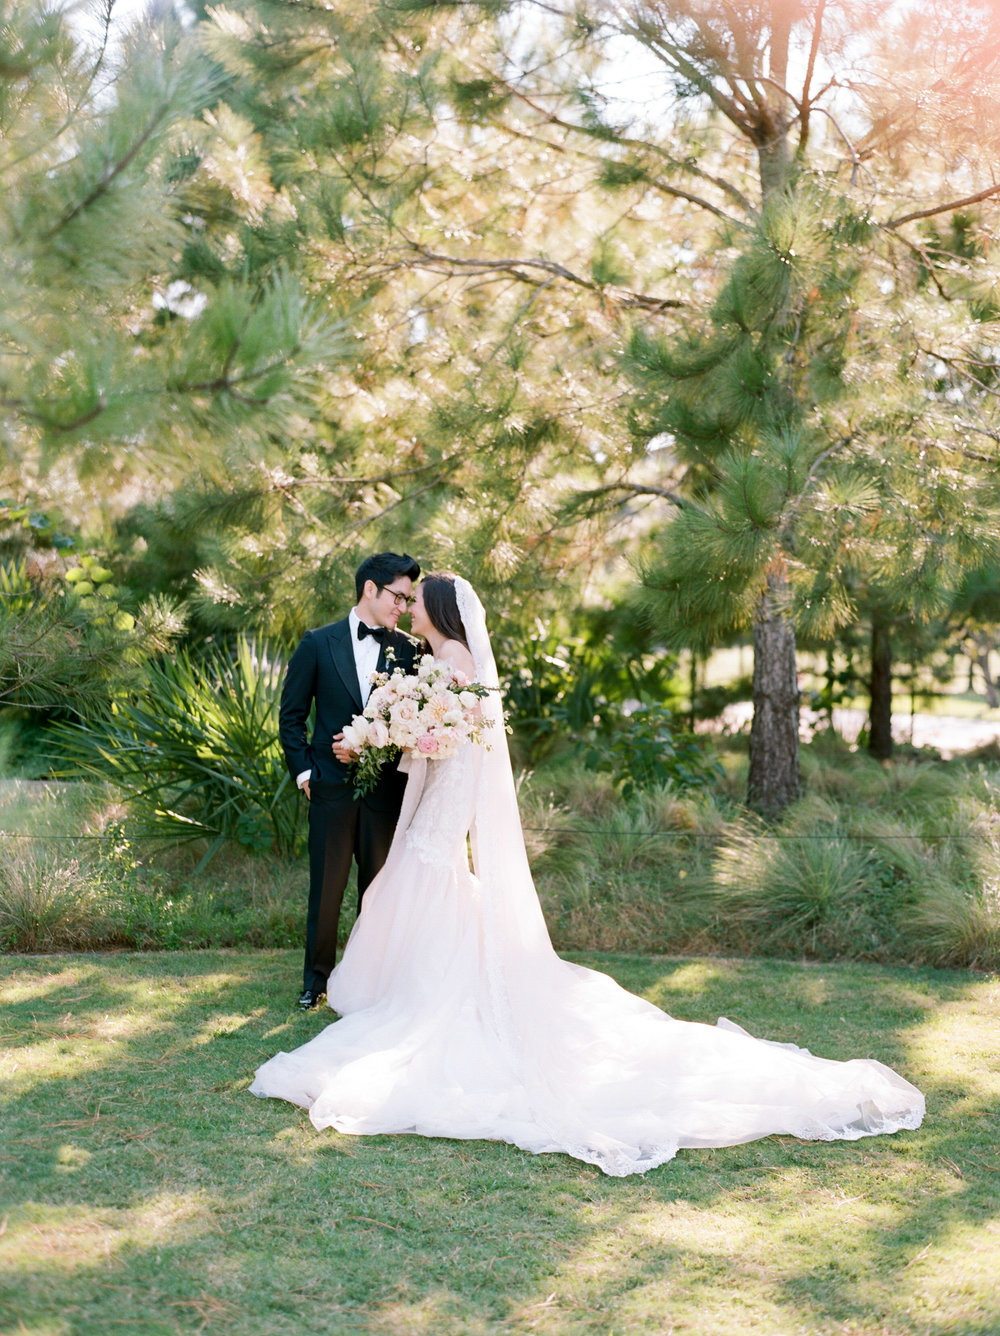 Martha-Stewart-Wedding-Dana-Fernandez-Photography-Josh-Texas-Film-Houston-Wedding-Fine-Art-Photographer-McGovern-Centennial-Gardens-Top-Best-52.jpg